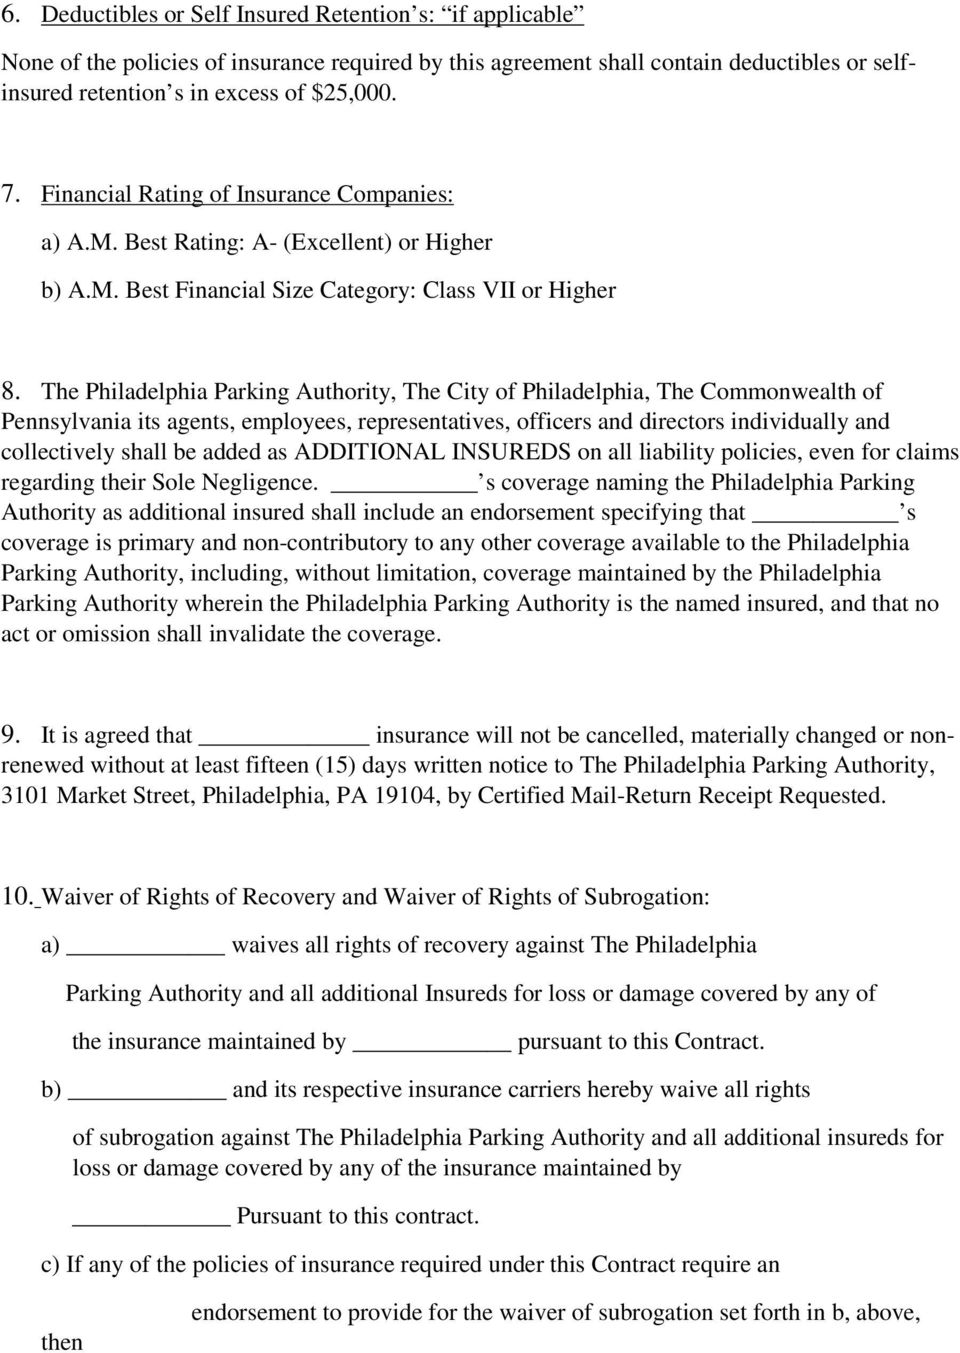 The Philadelphia Parking Authority, The City of Philadelphia, The Commonwealth of Pennsylvania its agents, employees, representatives, officers and directors individually and collectively shall be